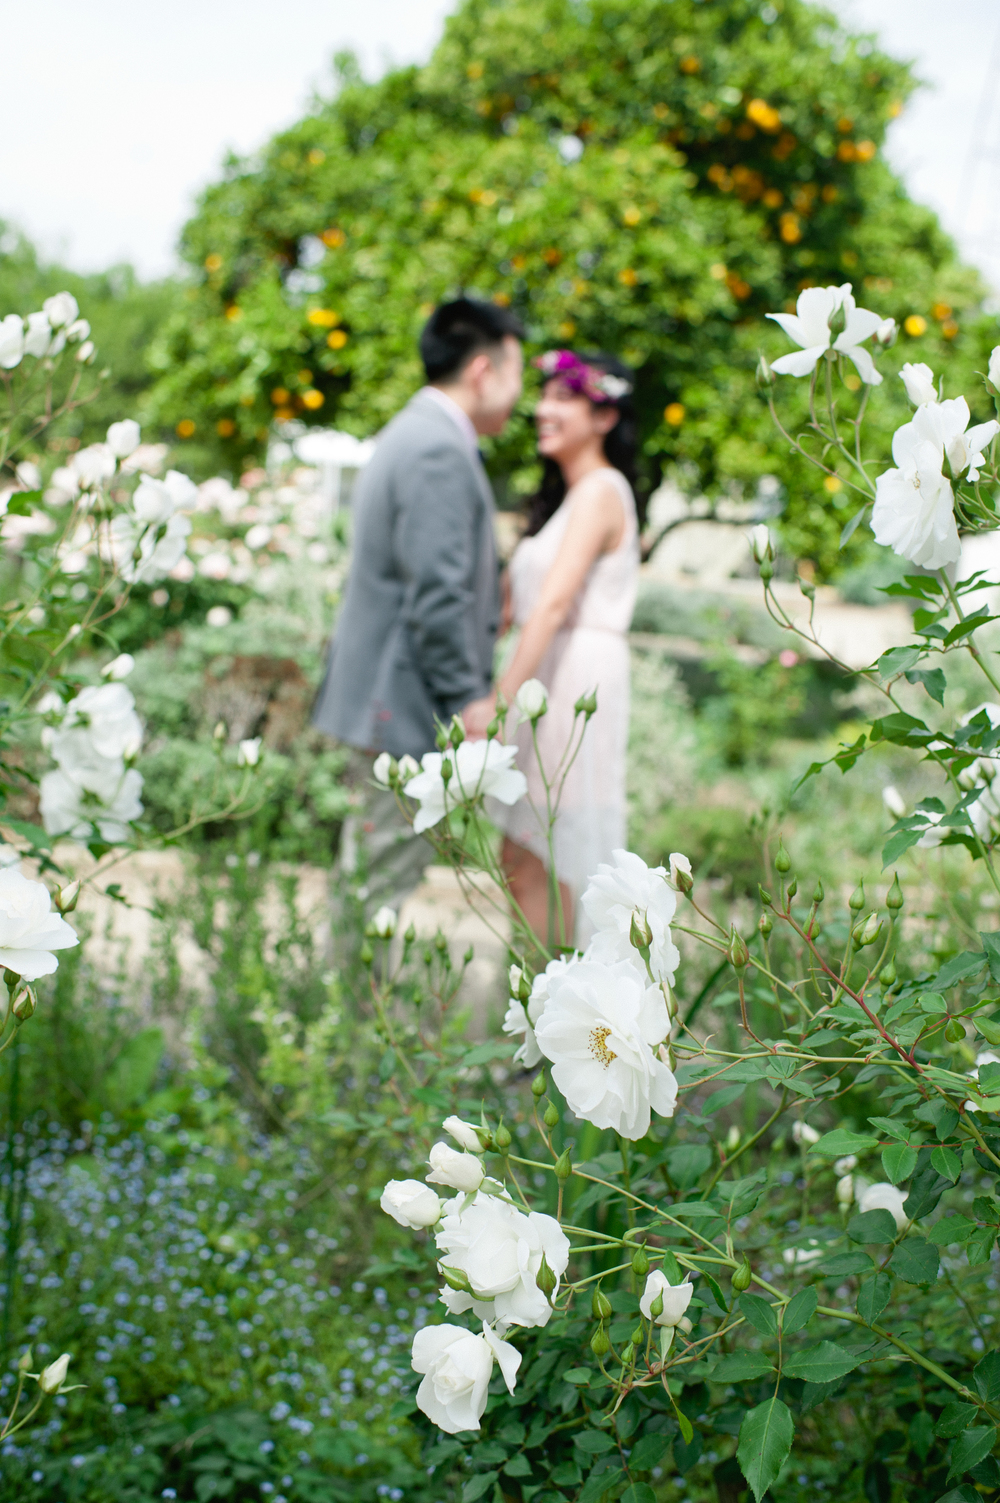 agnes and chun - carissa woo photography-95.jpg